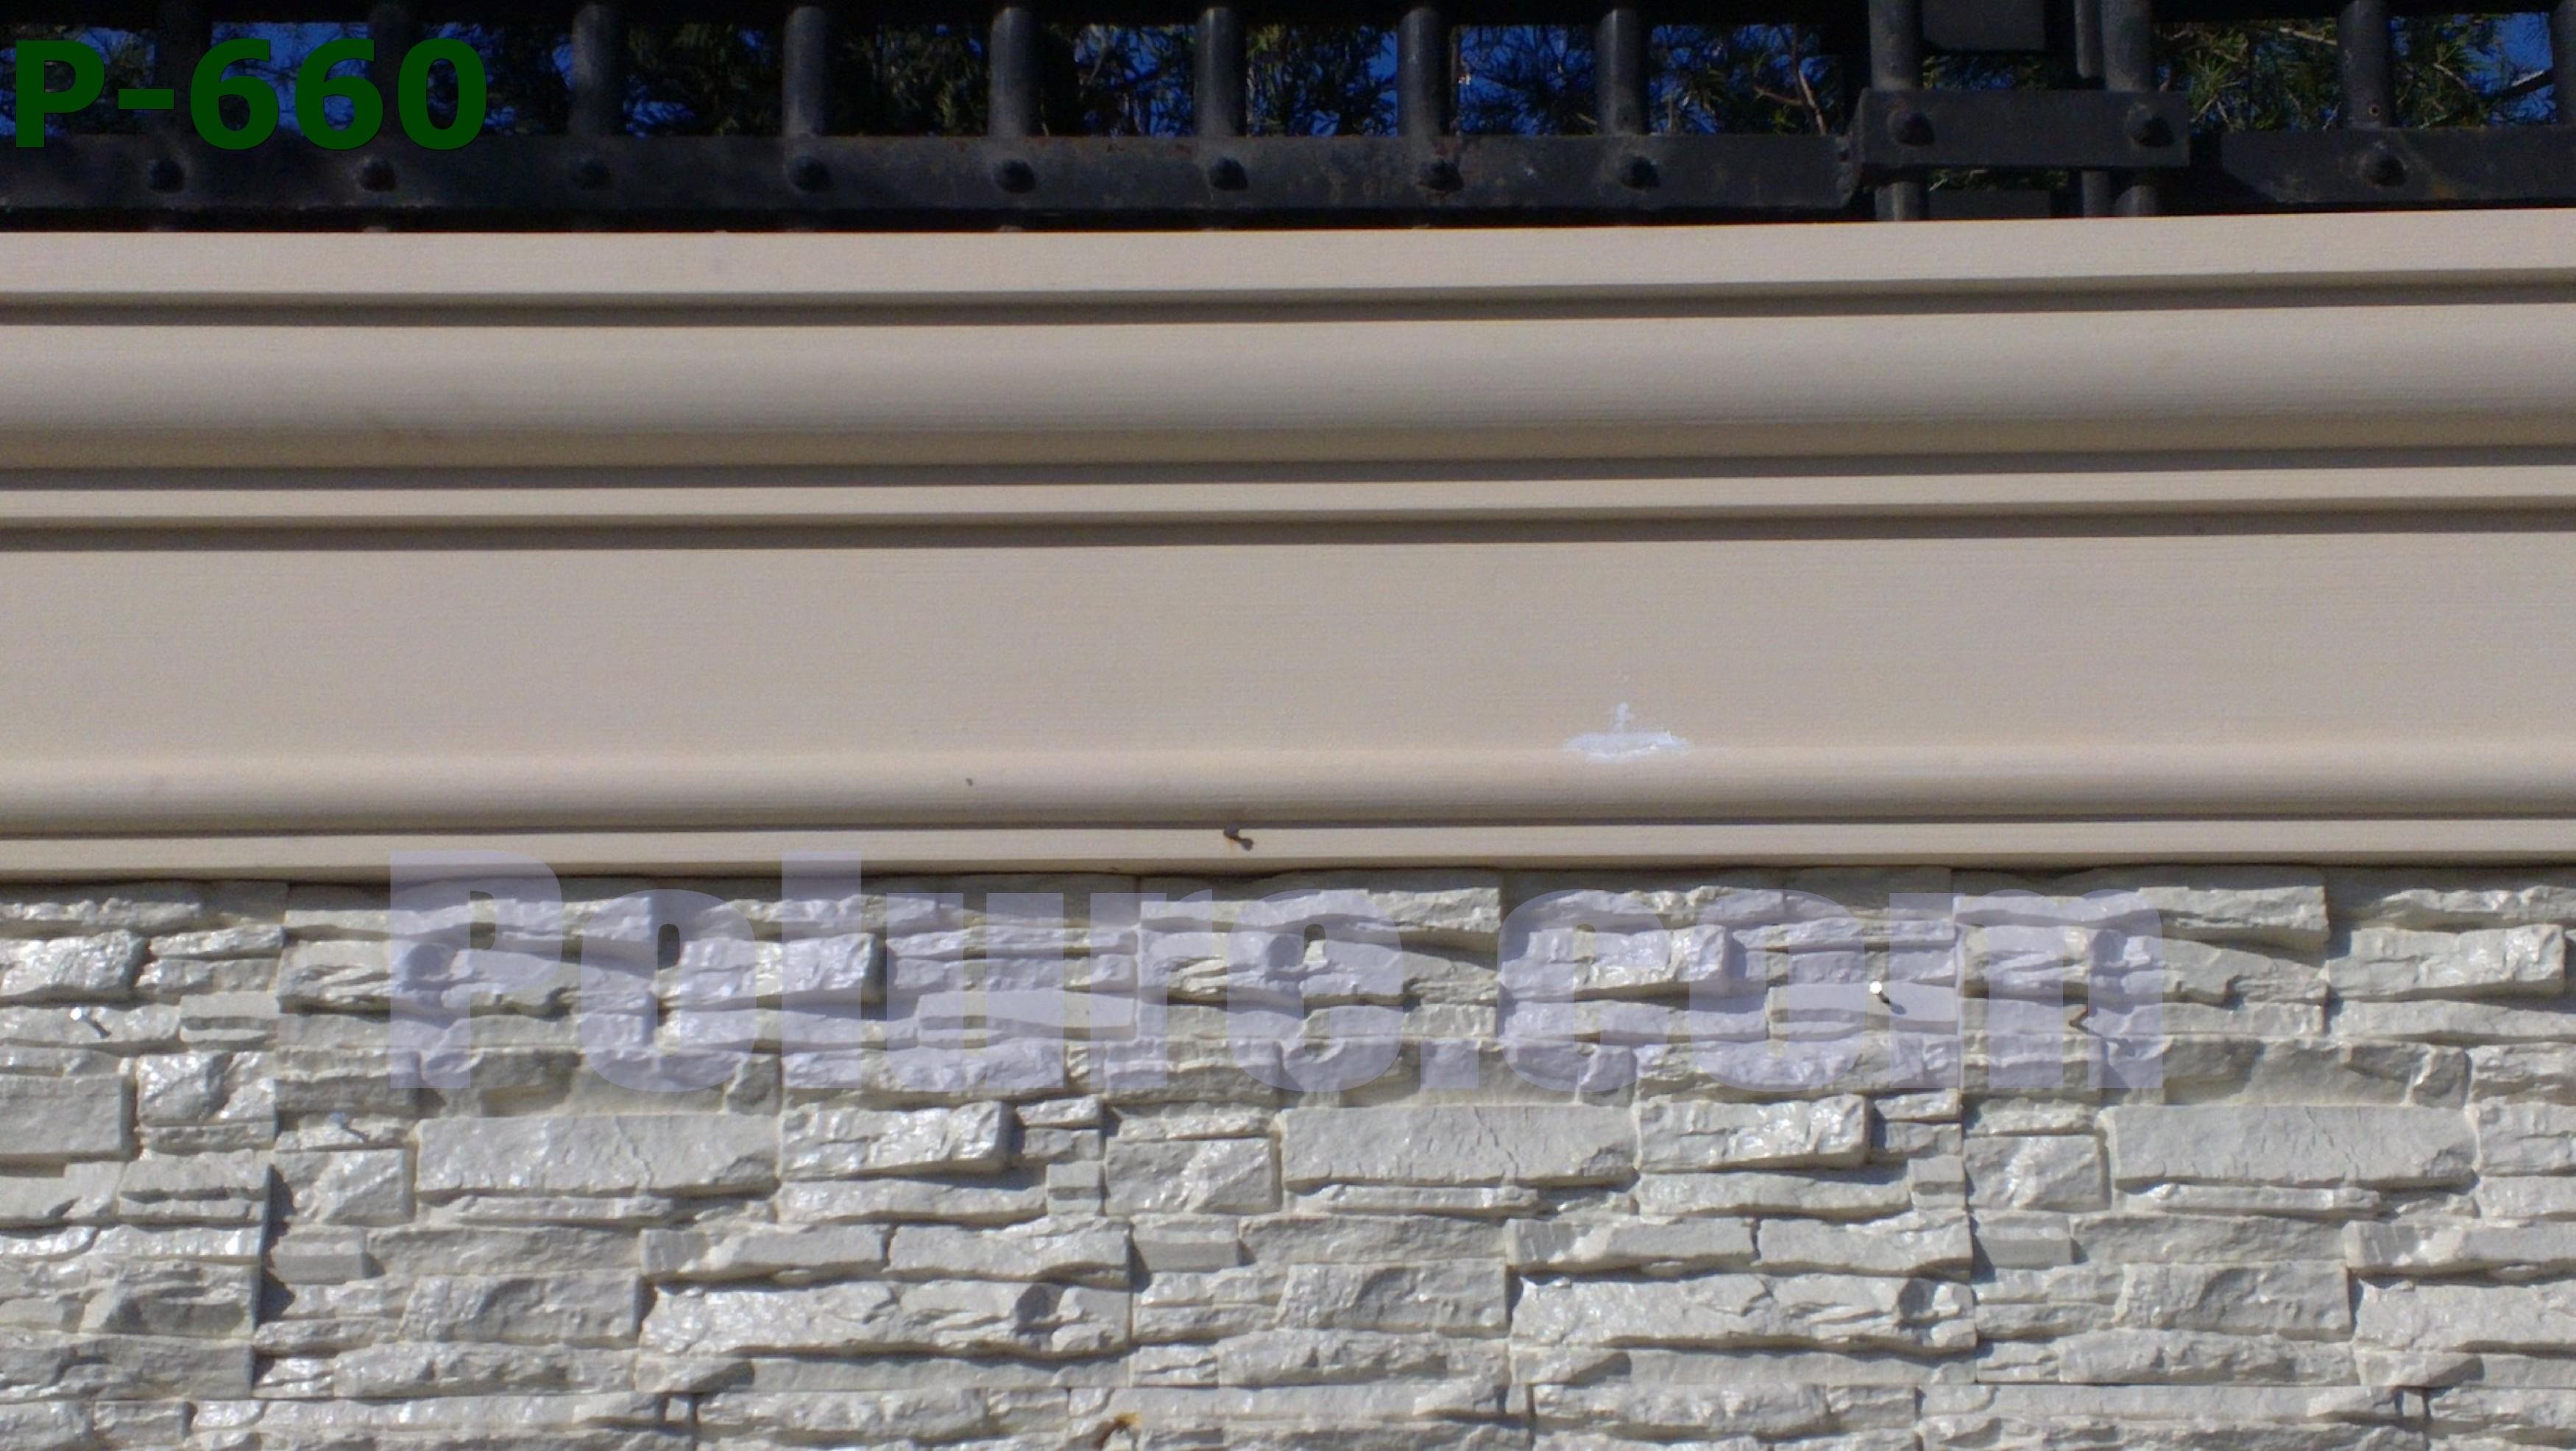 p-660-decorative-polyurethane-stone-look-like-moulding-panel-for-garden-wall-coted-rock-imitation-pu-for-interior-exterior decoration-board-price (21)